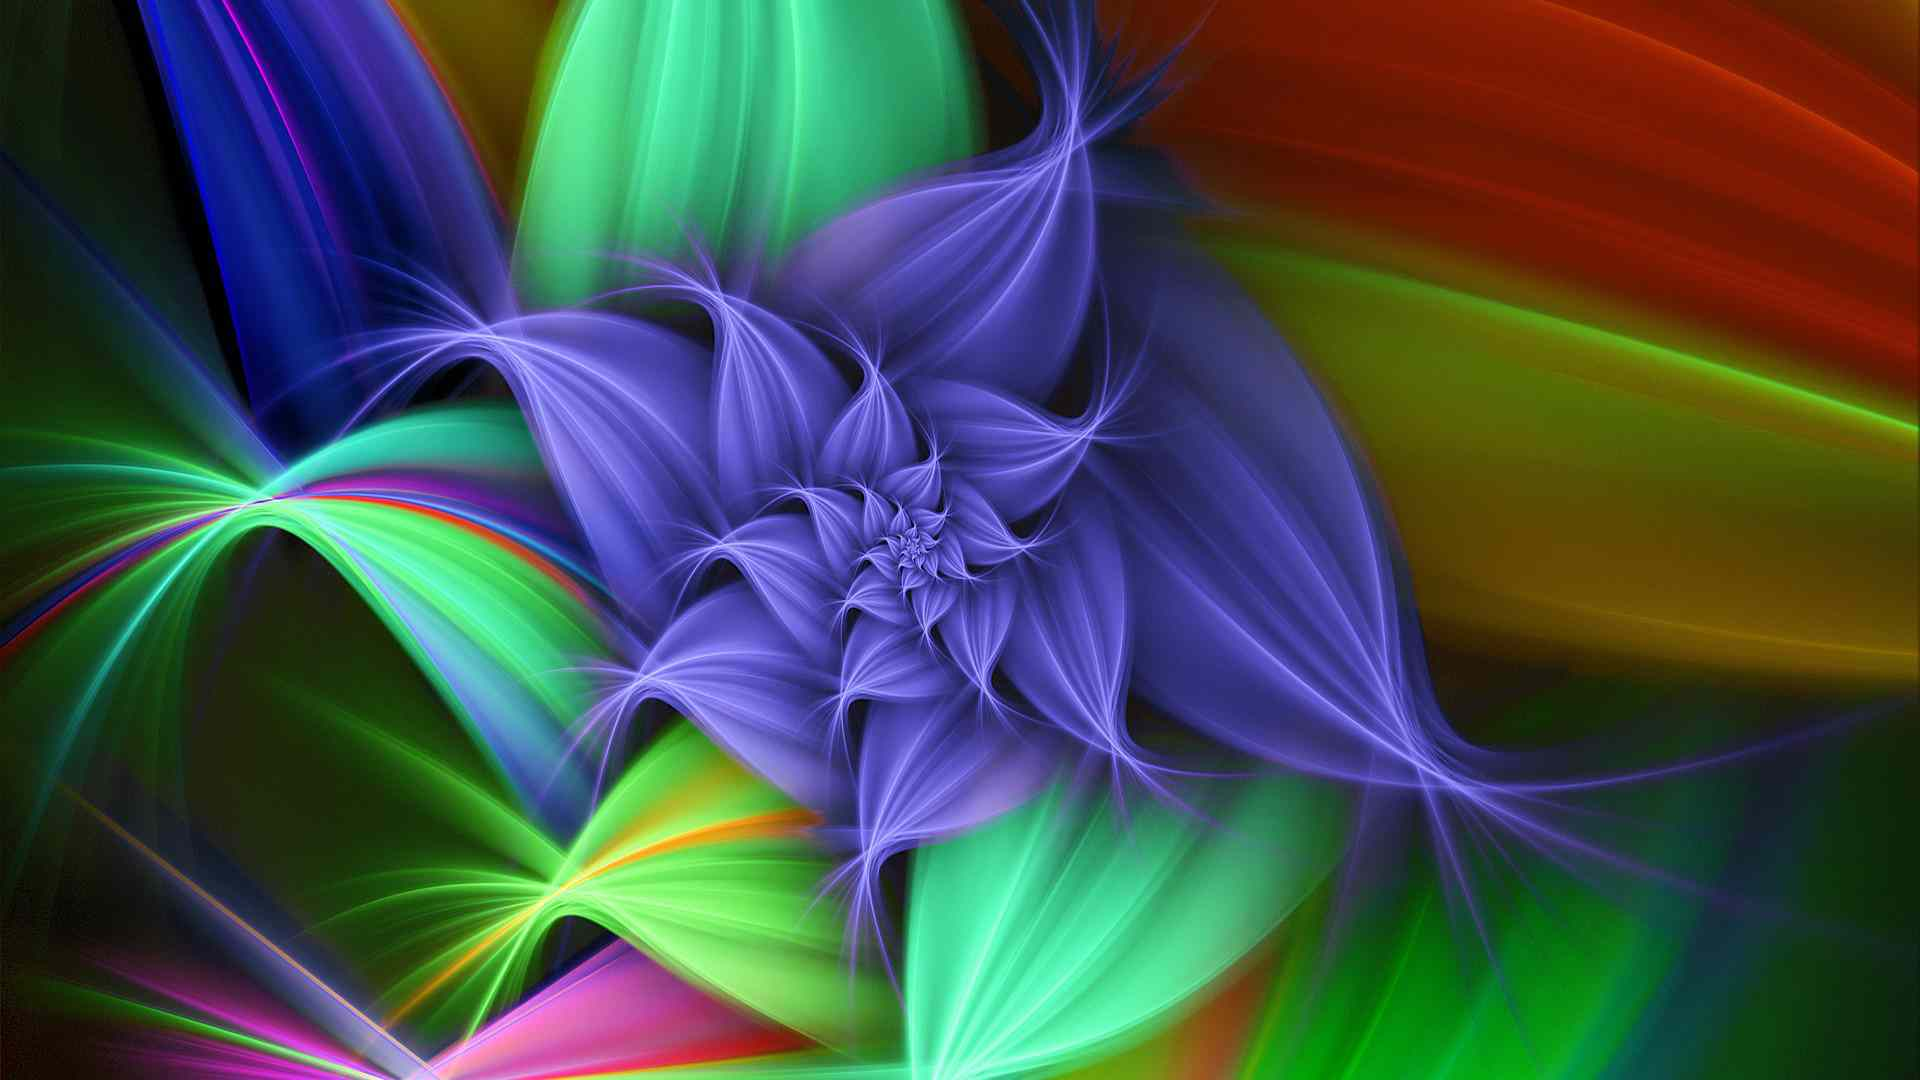 Awesome New Flowers Full Screen Hd Photo Download Desktop Fullscreen ...